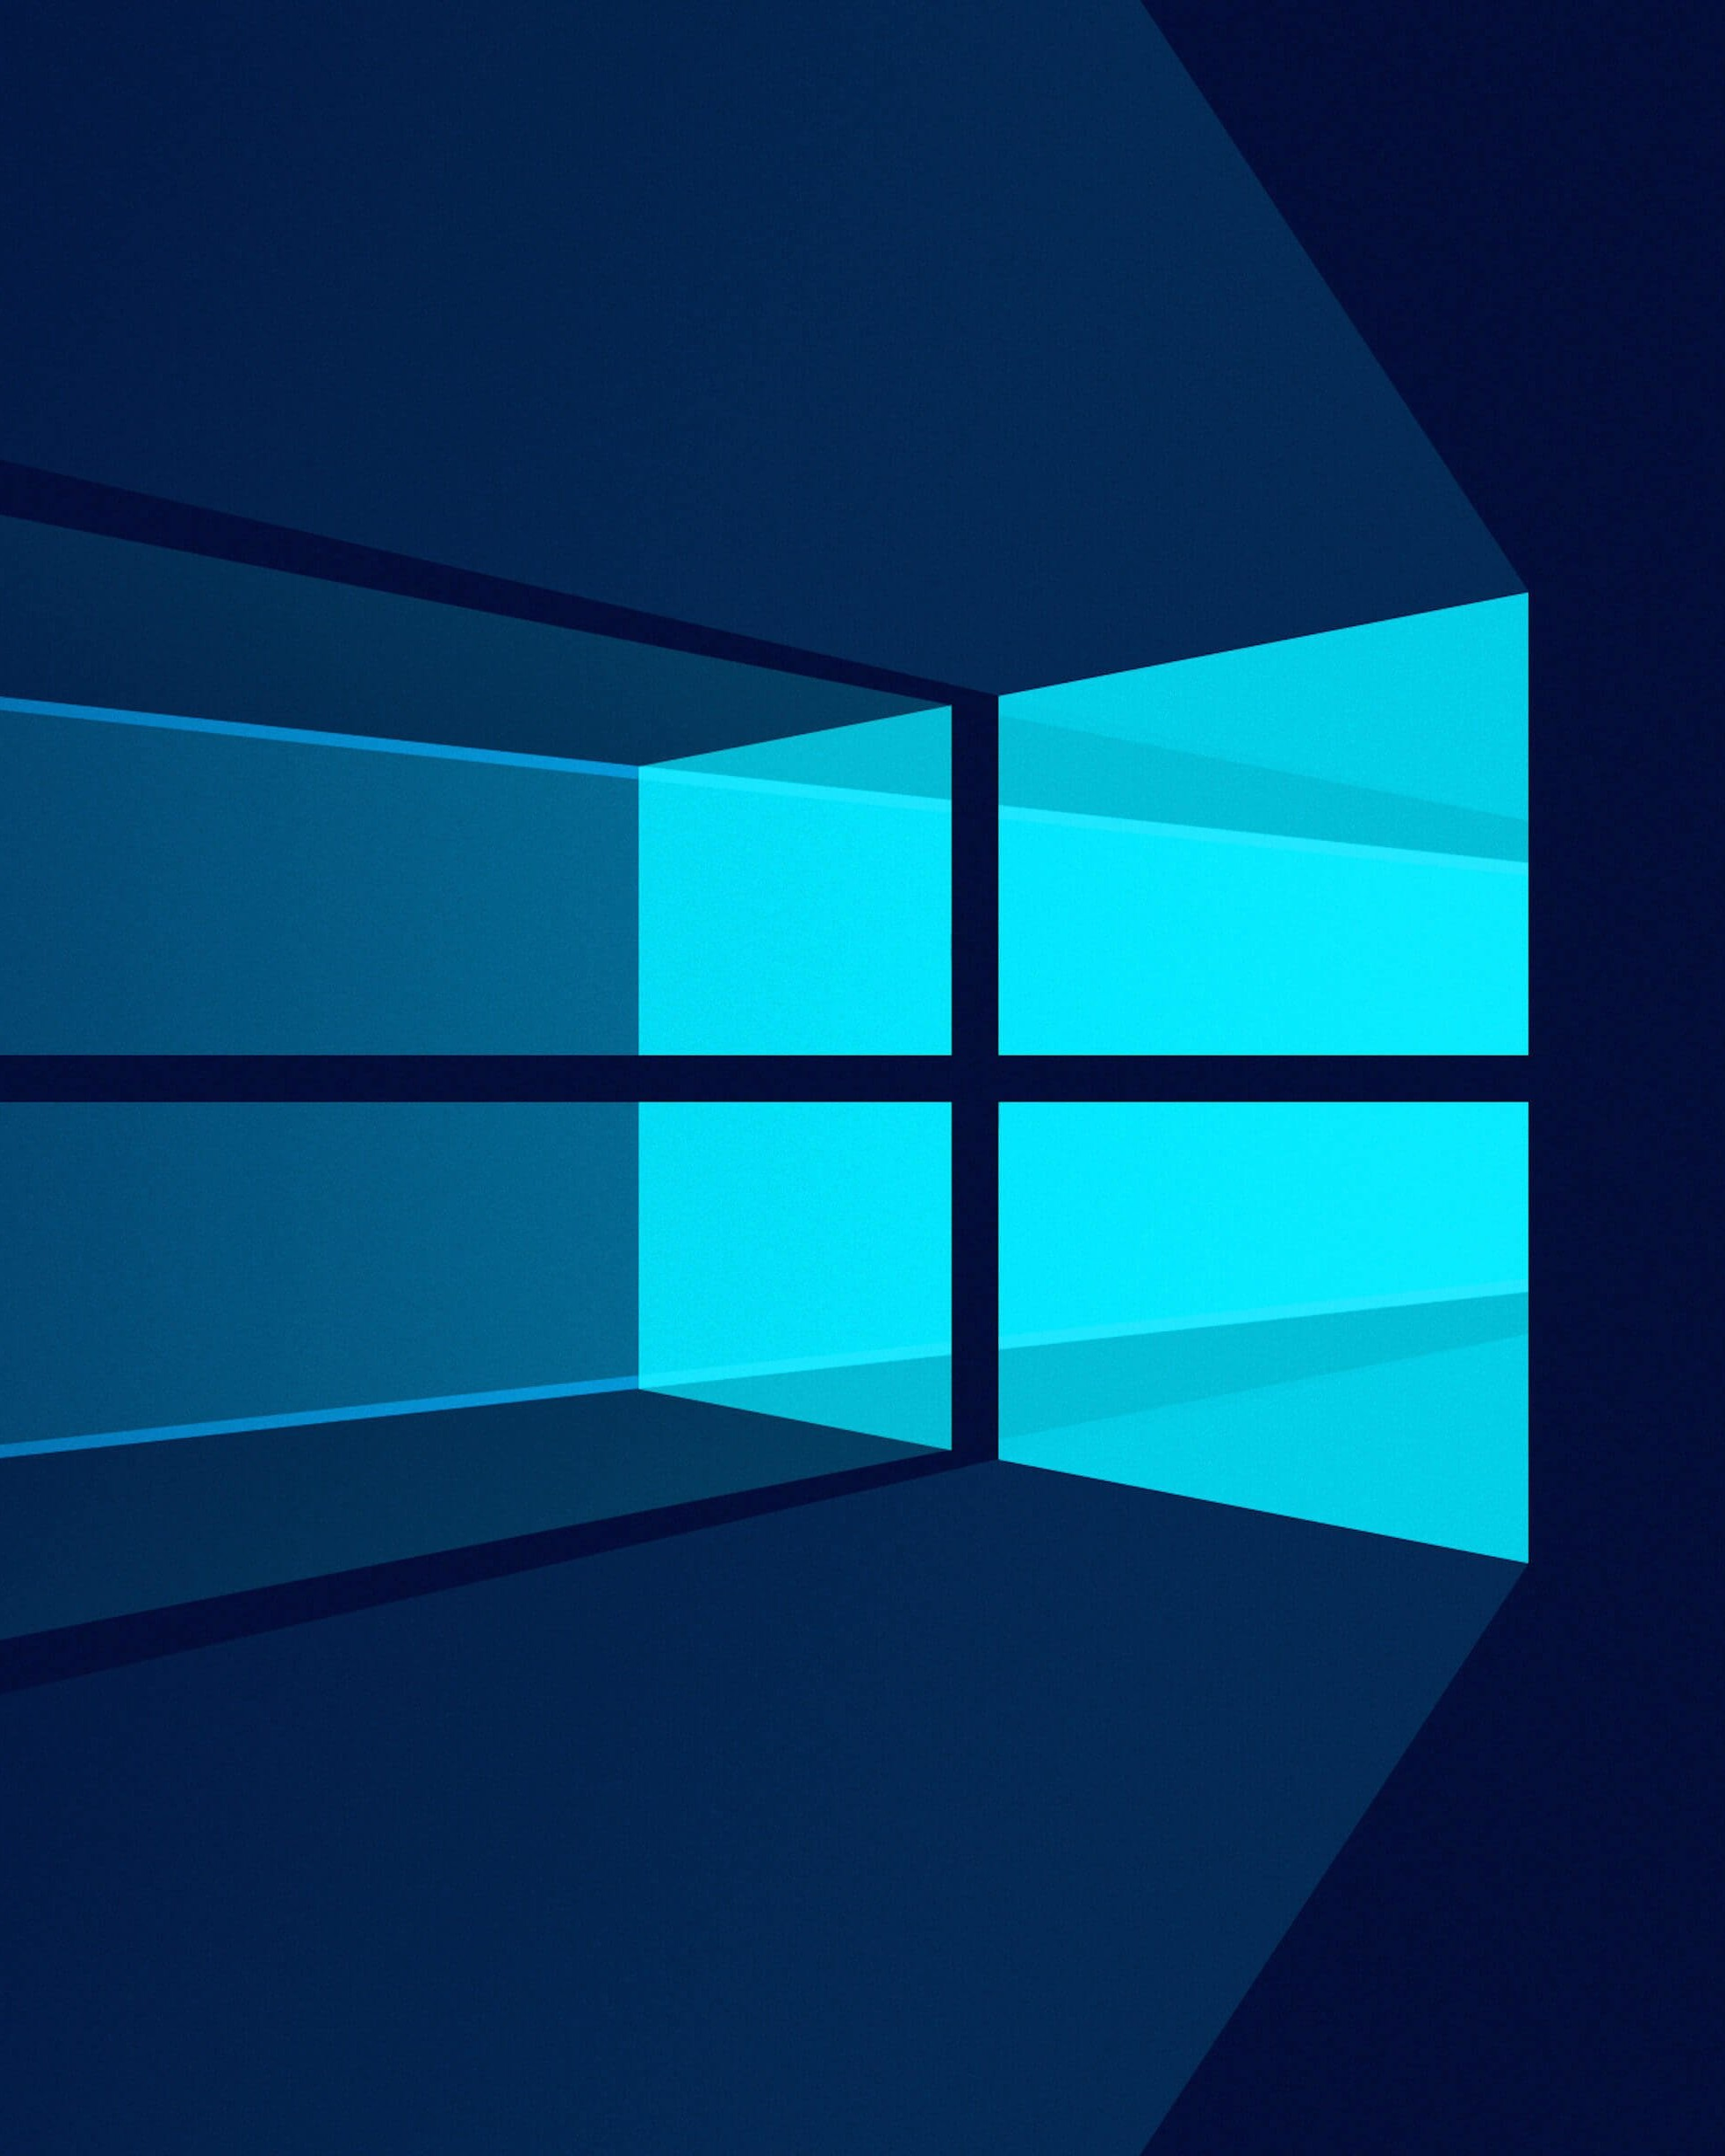 Windows 10 Flat Wallpaper for Google Nexus 7